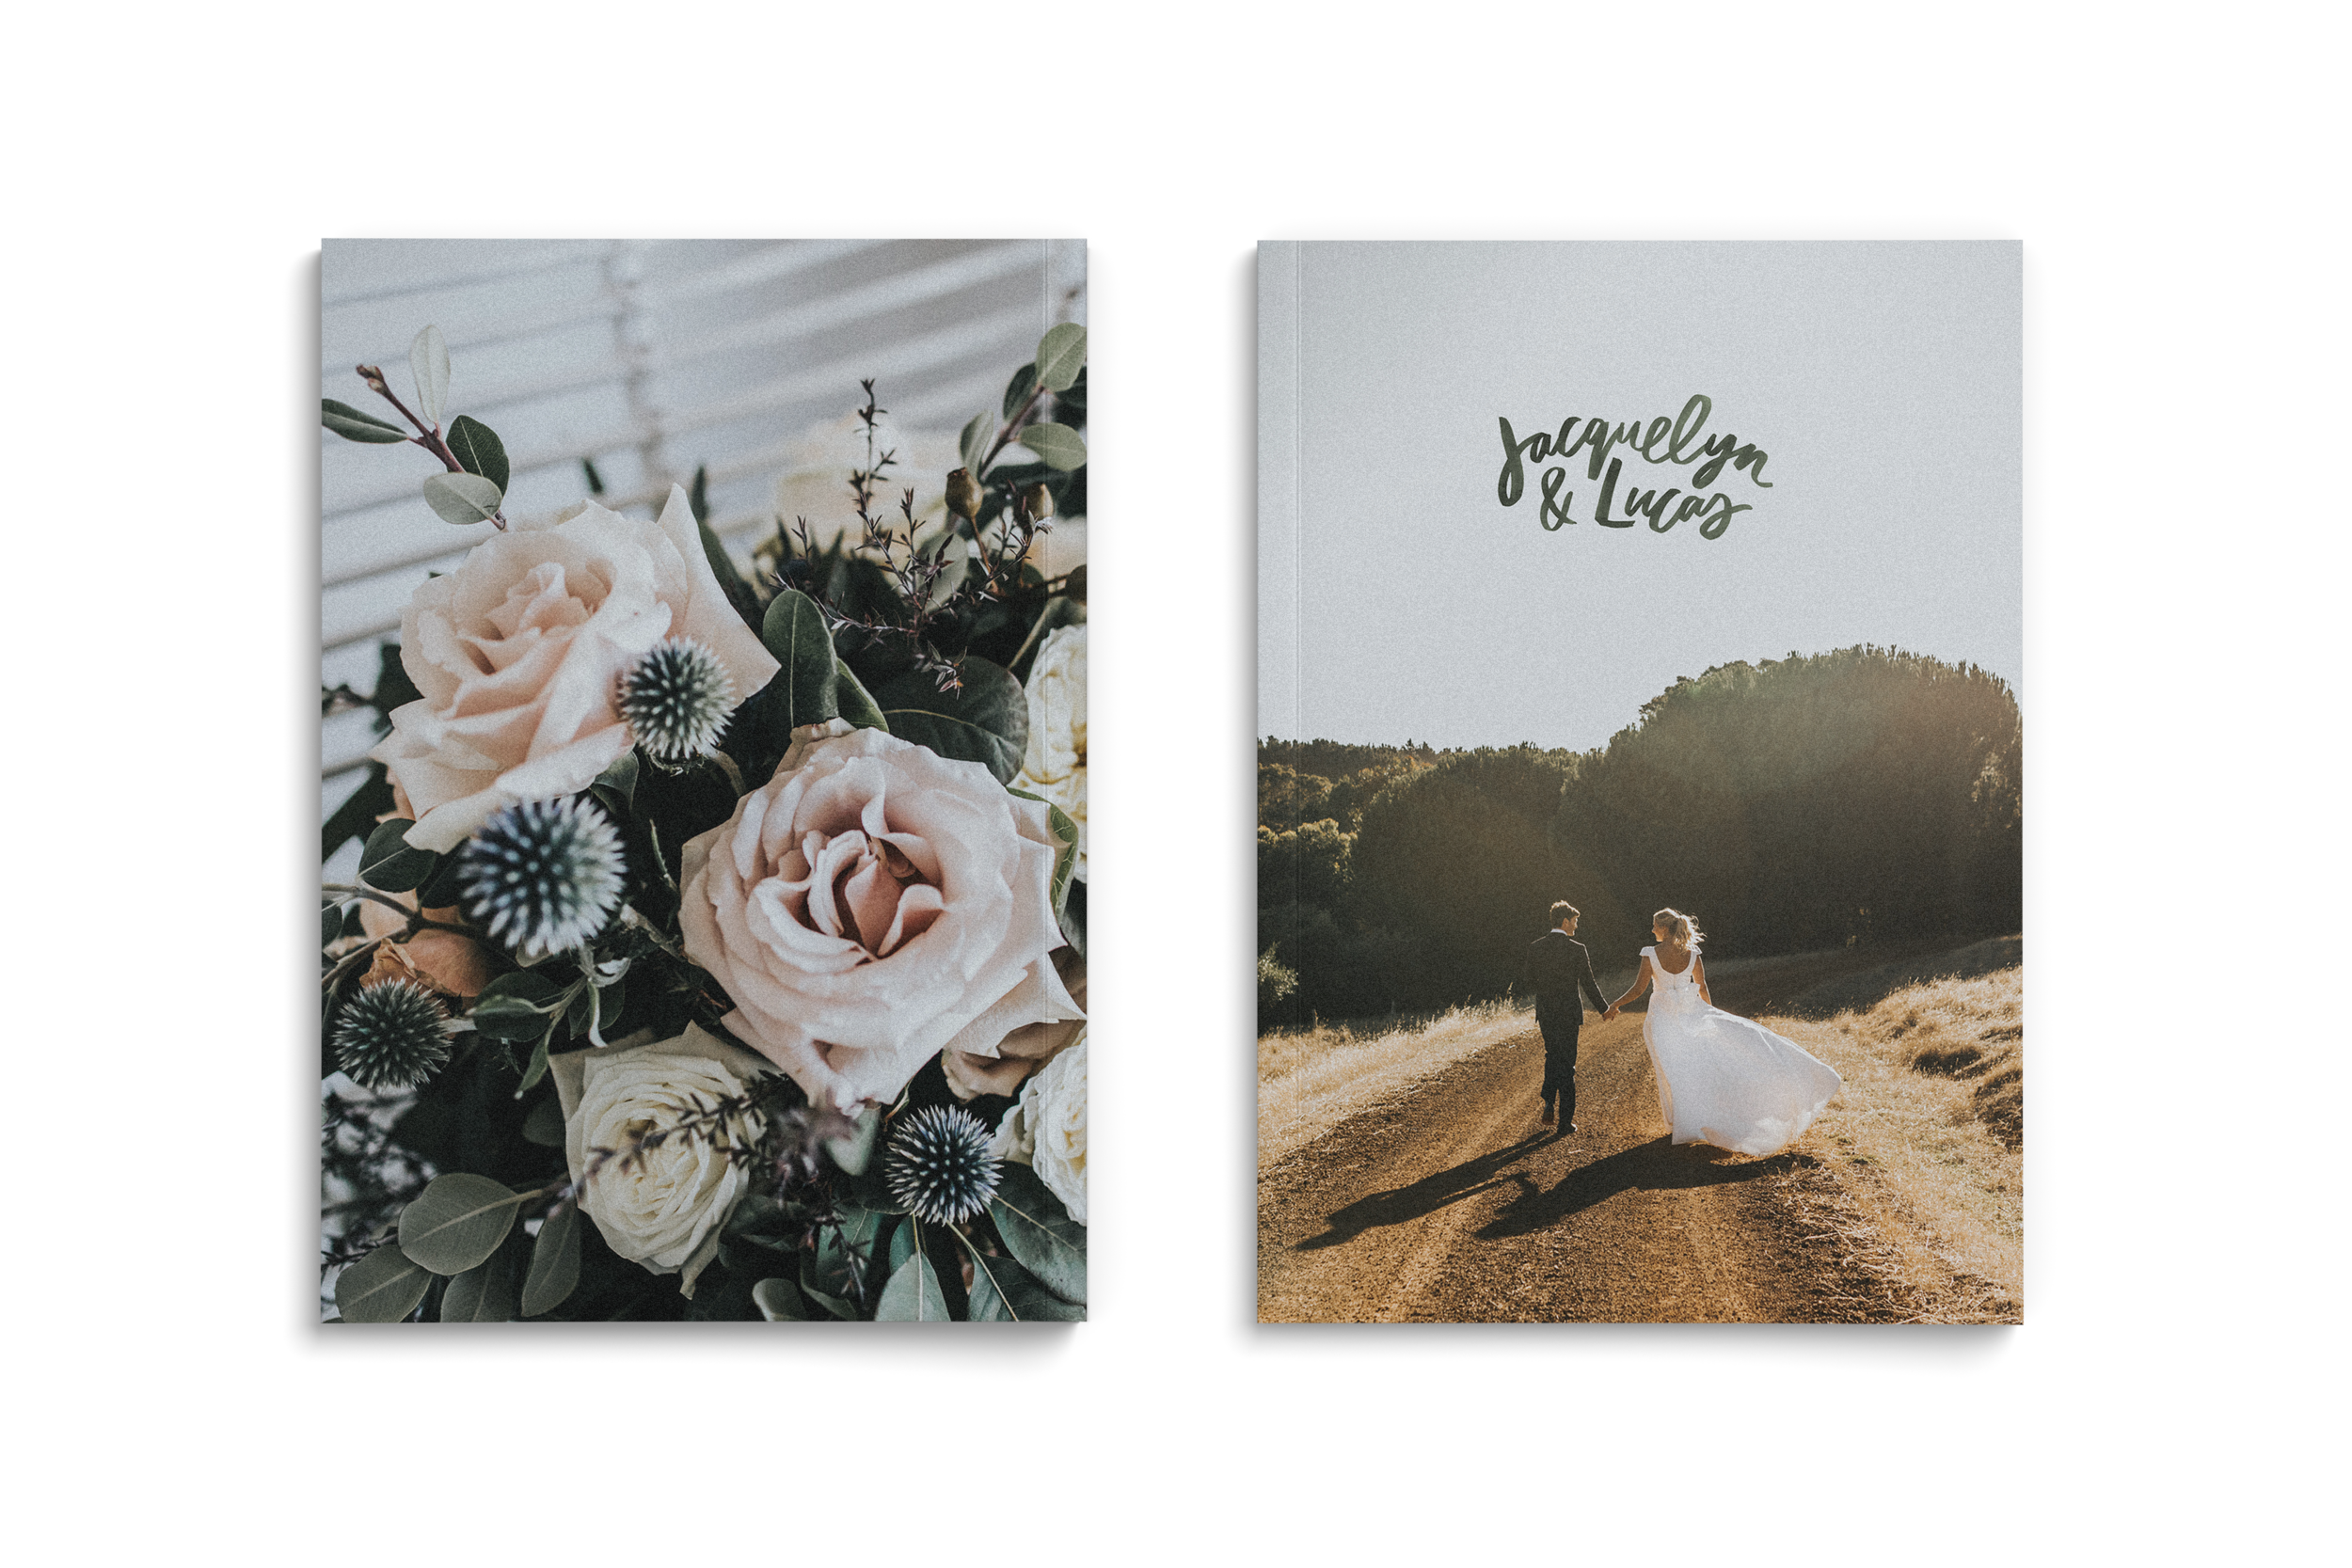 Jacqs-Lucas-Wedding-Zine-Cover-Front-Back-1.png